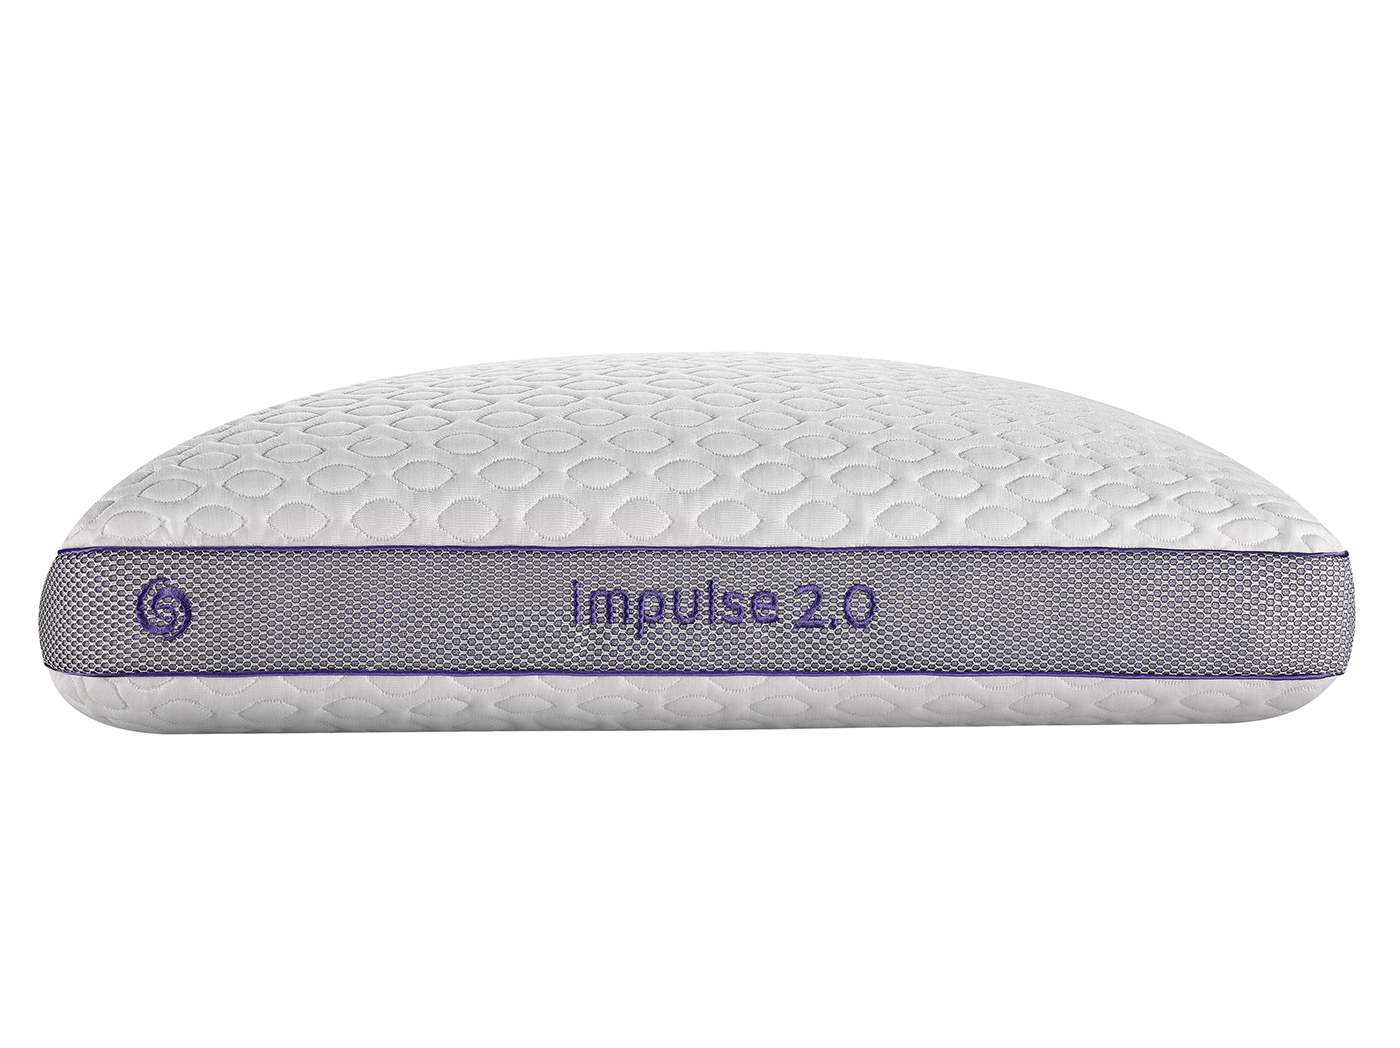 Impulse 2.0 Personal Pillow